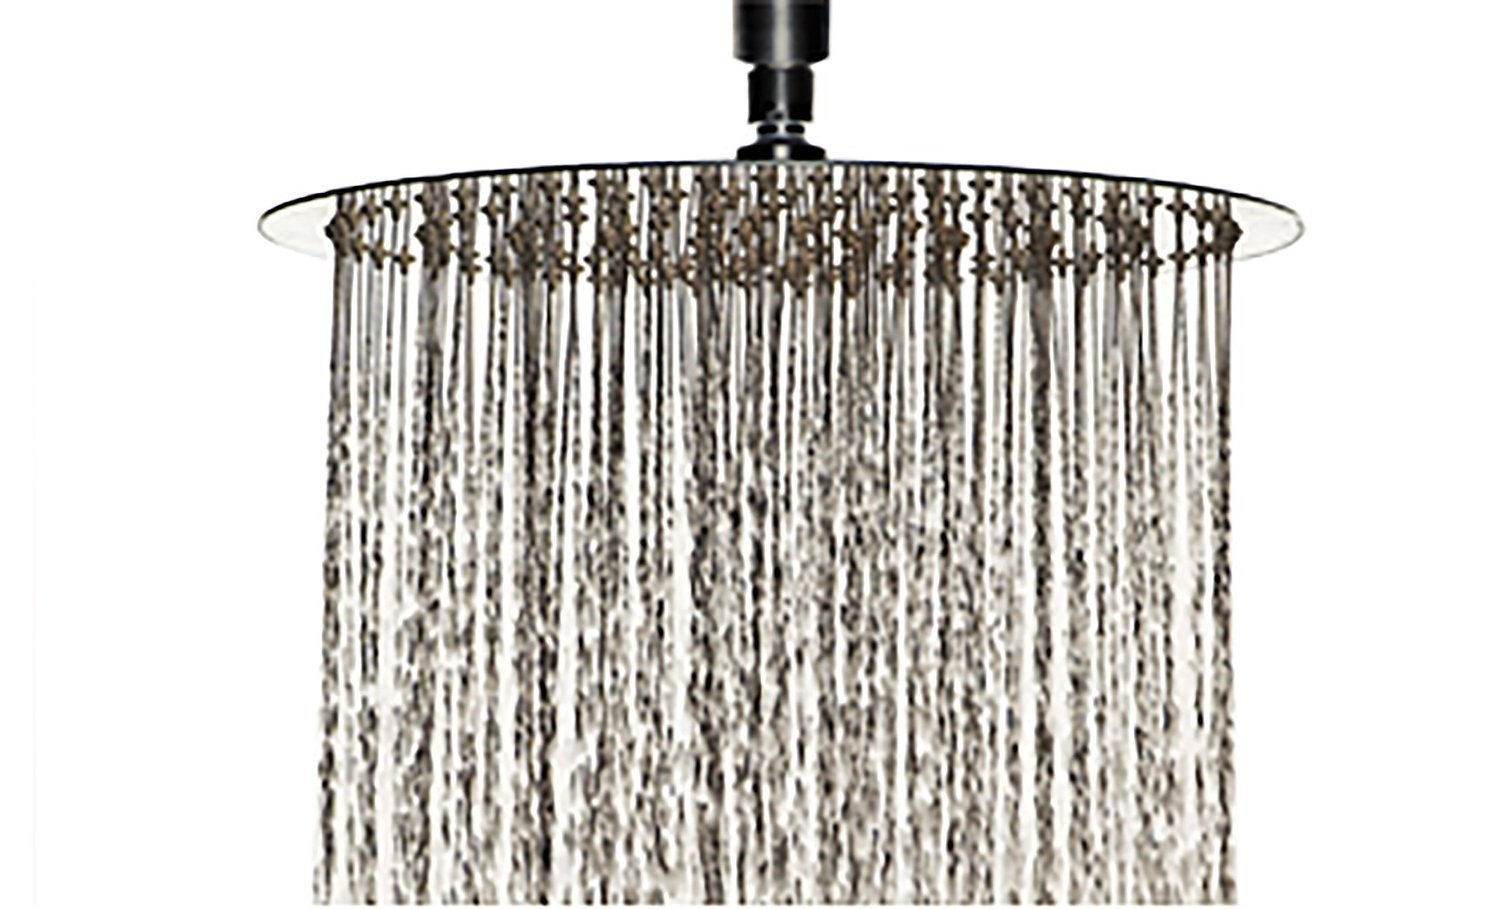 delicate Cb's Bundles 8 Inch Chrome Rainfall High Pressure Shower Head - 2.5 GPM Low Flow Rate Fixed Waterfall Showerhead